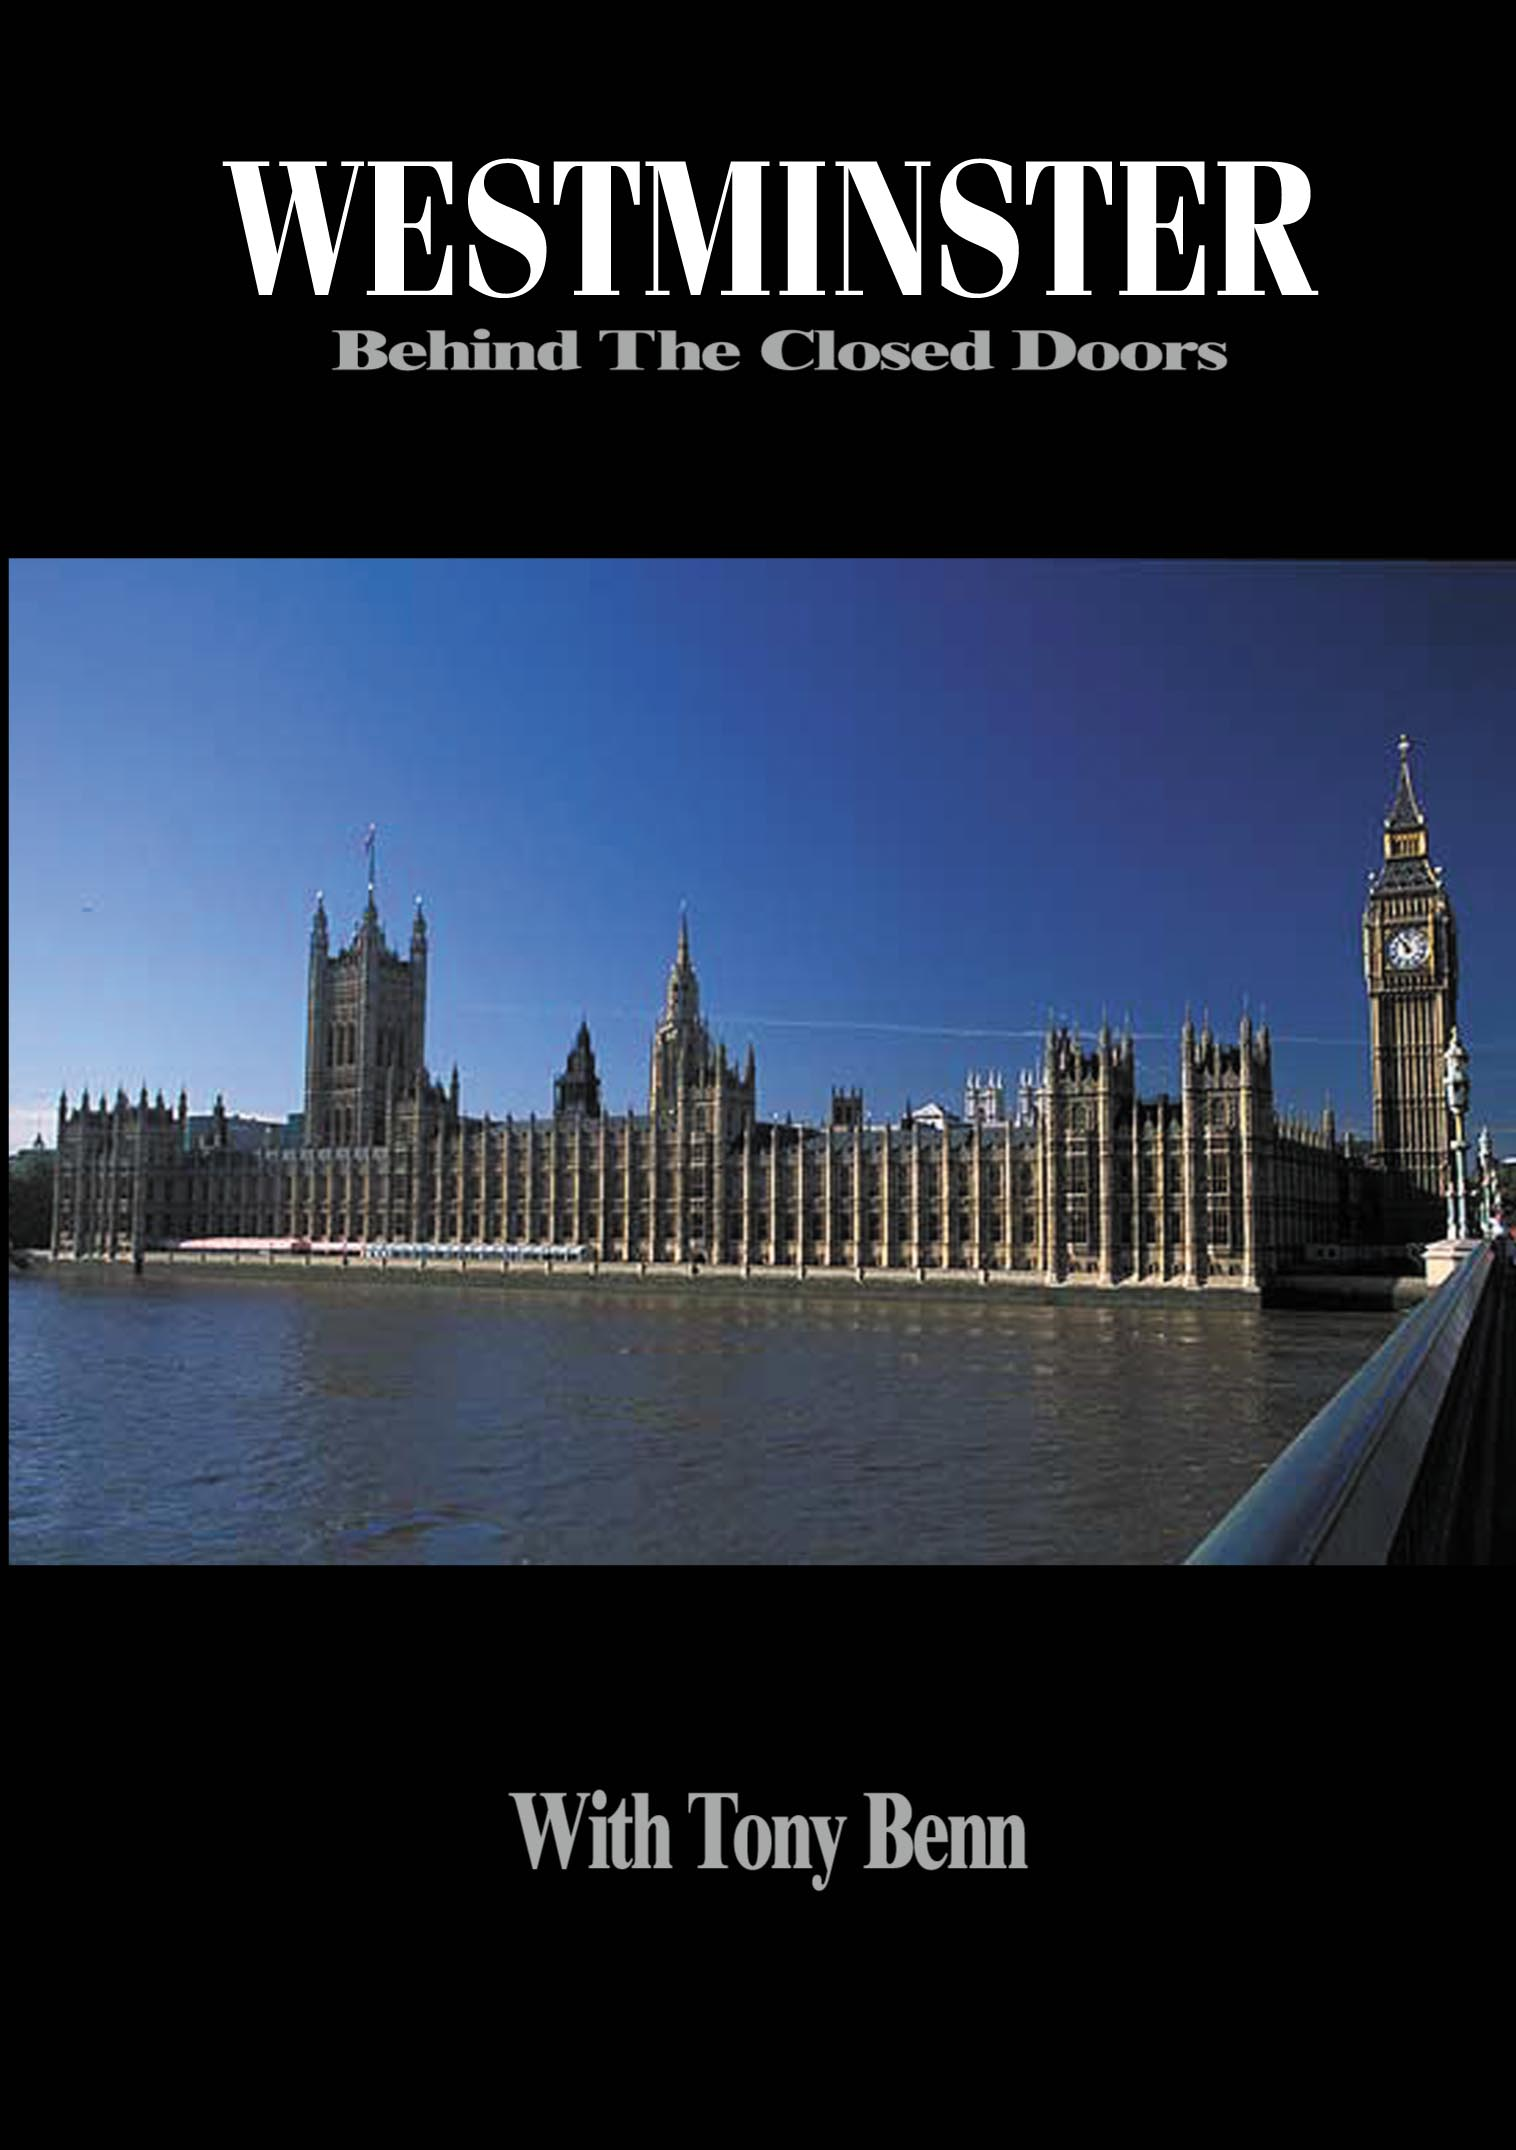 westminster behind closed doors with tony benn